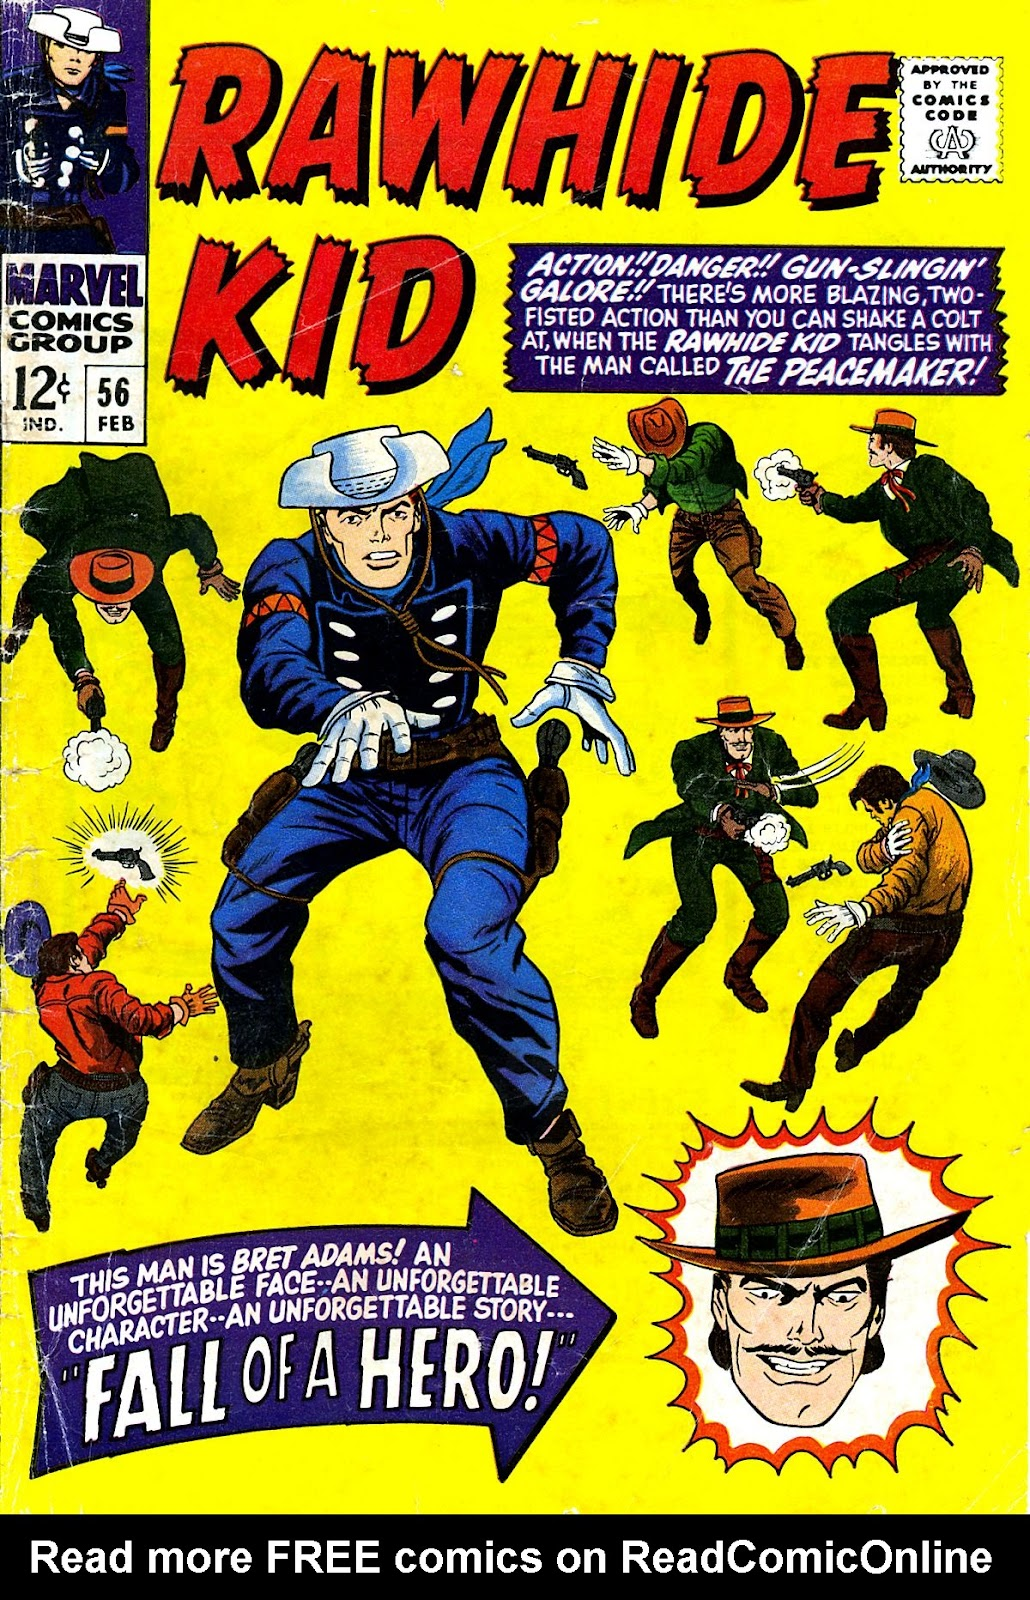 The Rawhide Kid (1955) issue 56 - Page 1